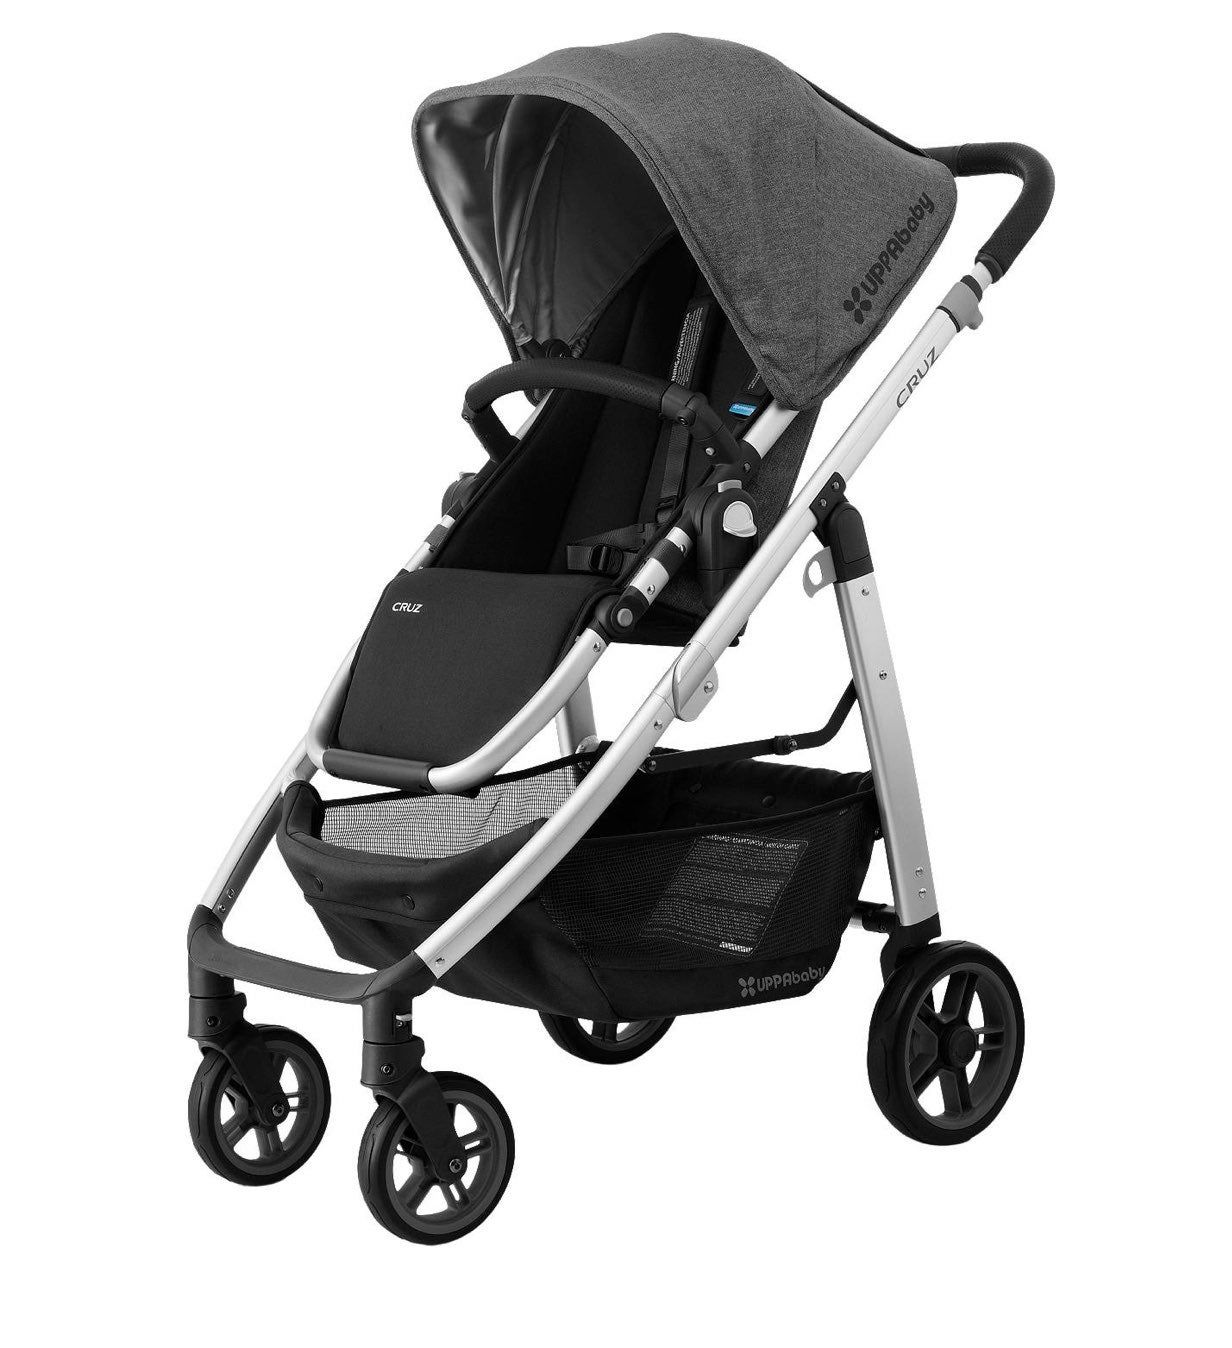 This UppaBaby Stroller is amazing easy to use and to